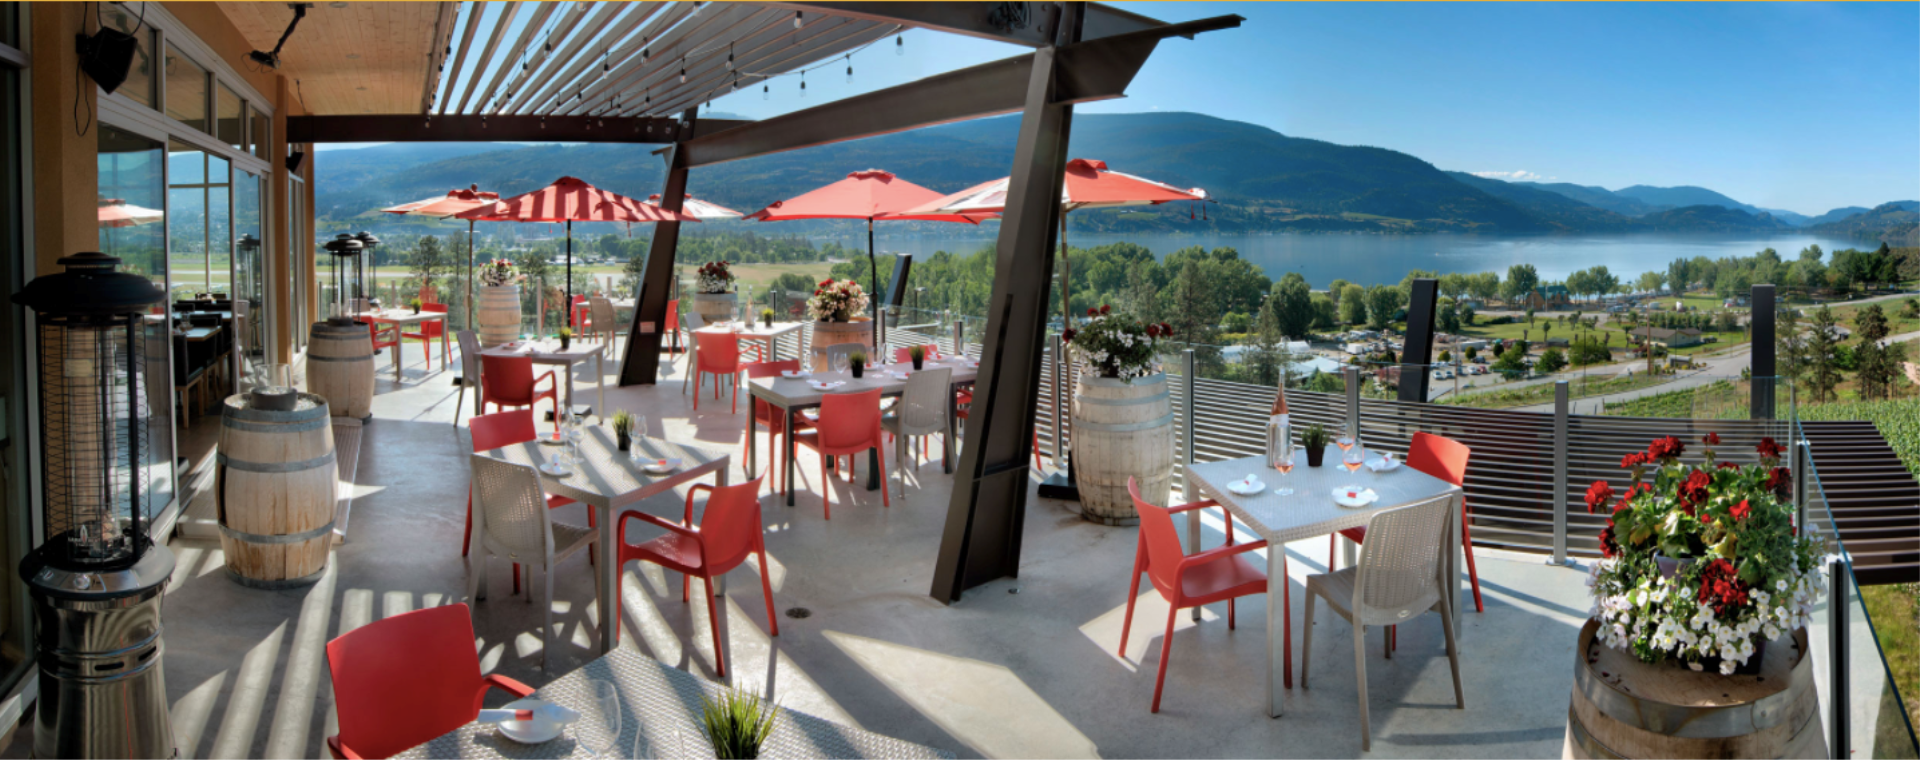 Play Winery Restaurant - Picture